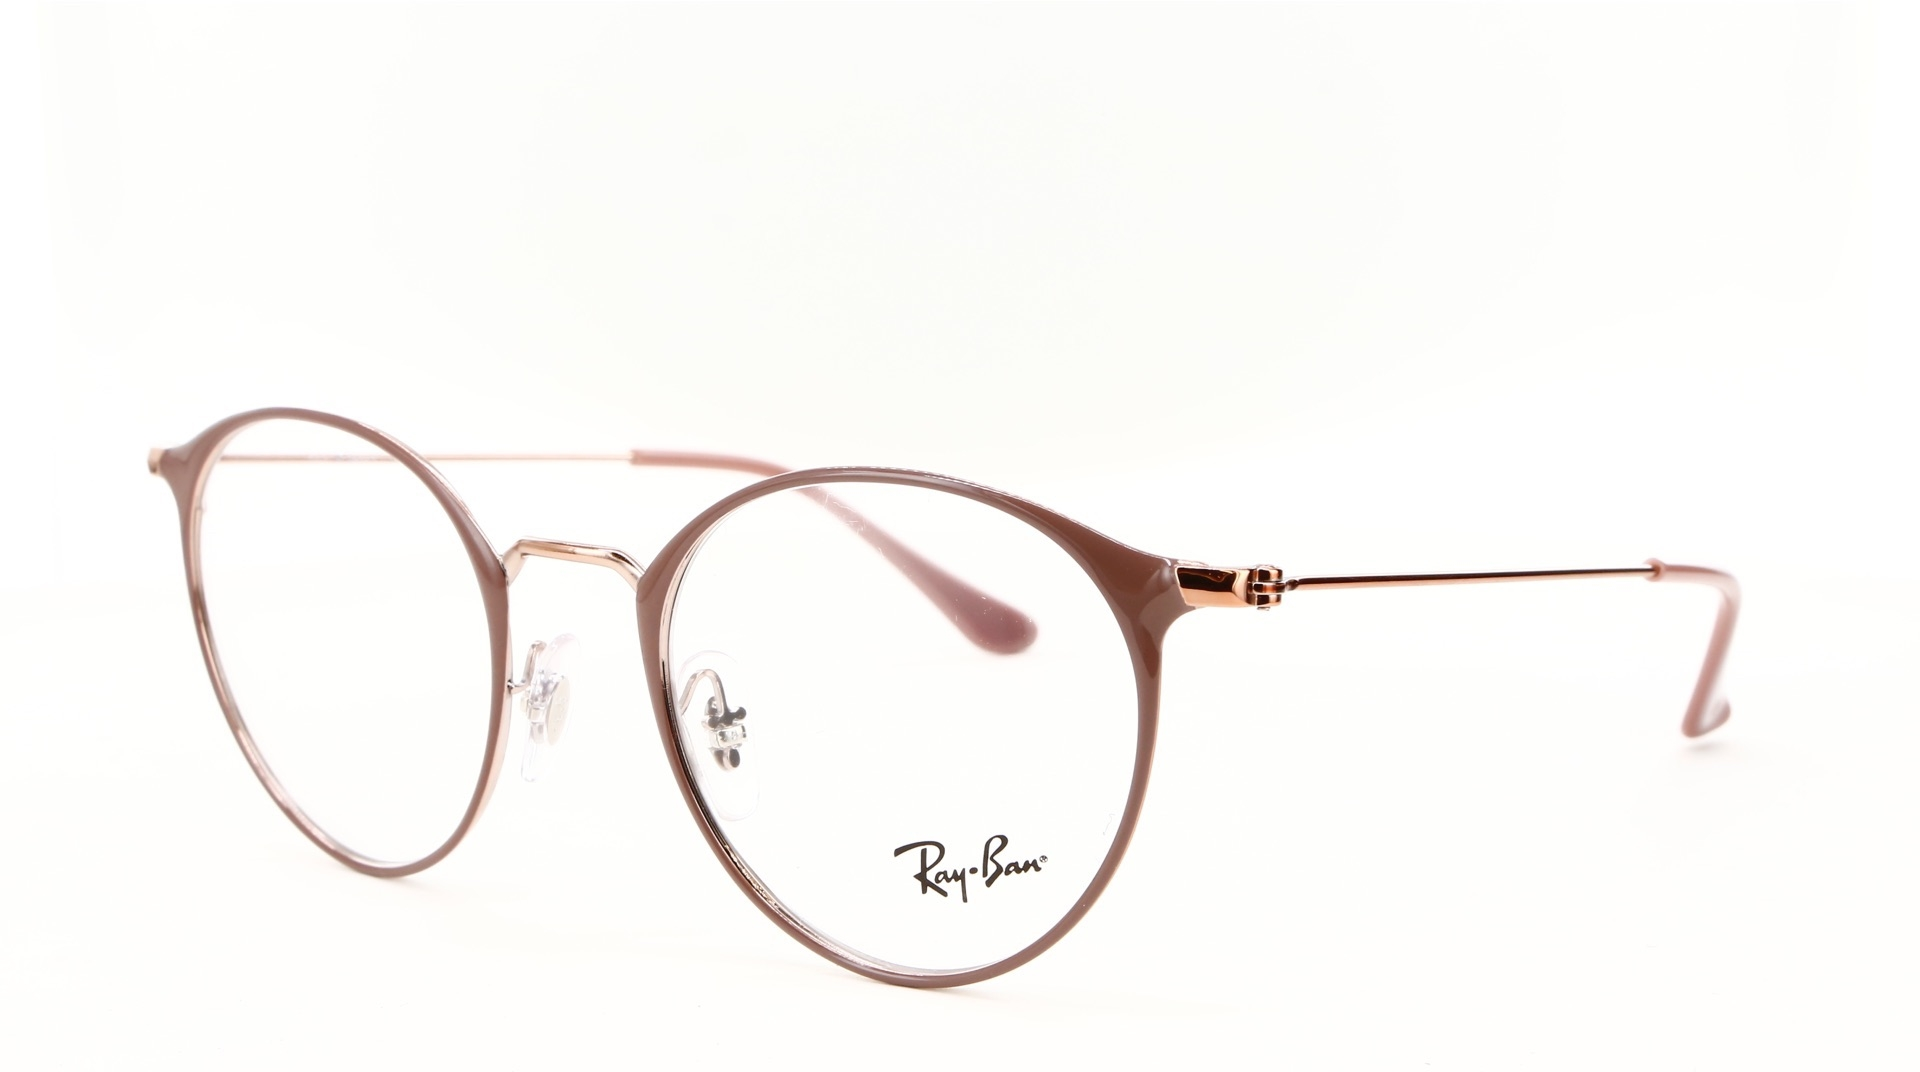 Ray-Ban - ref: 78765